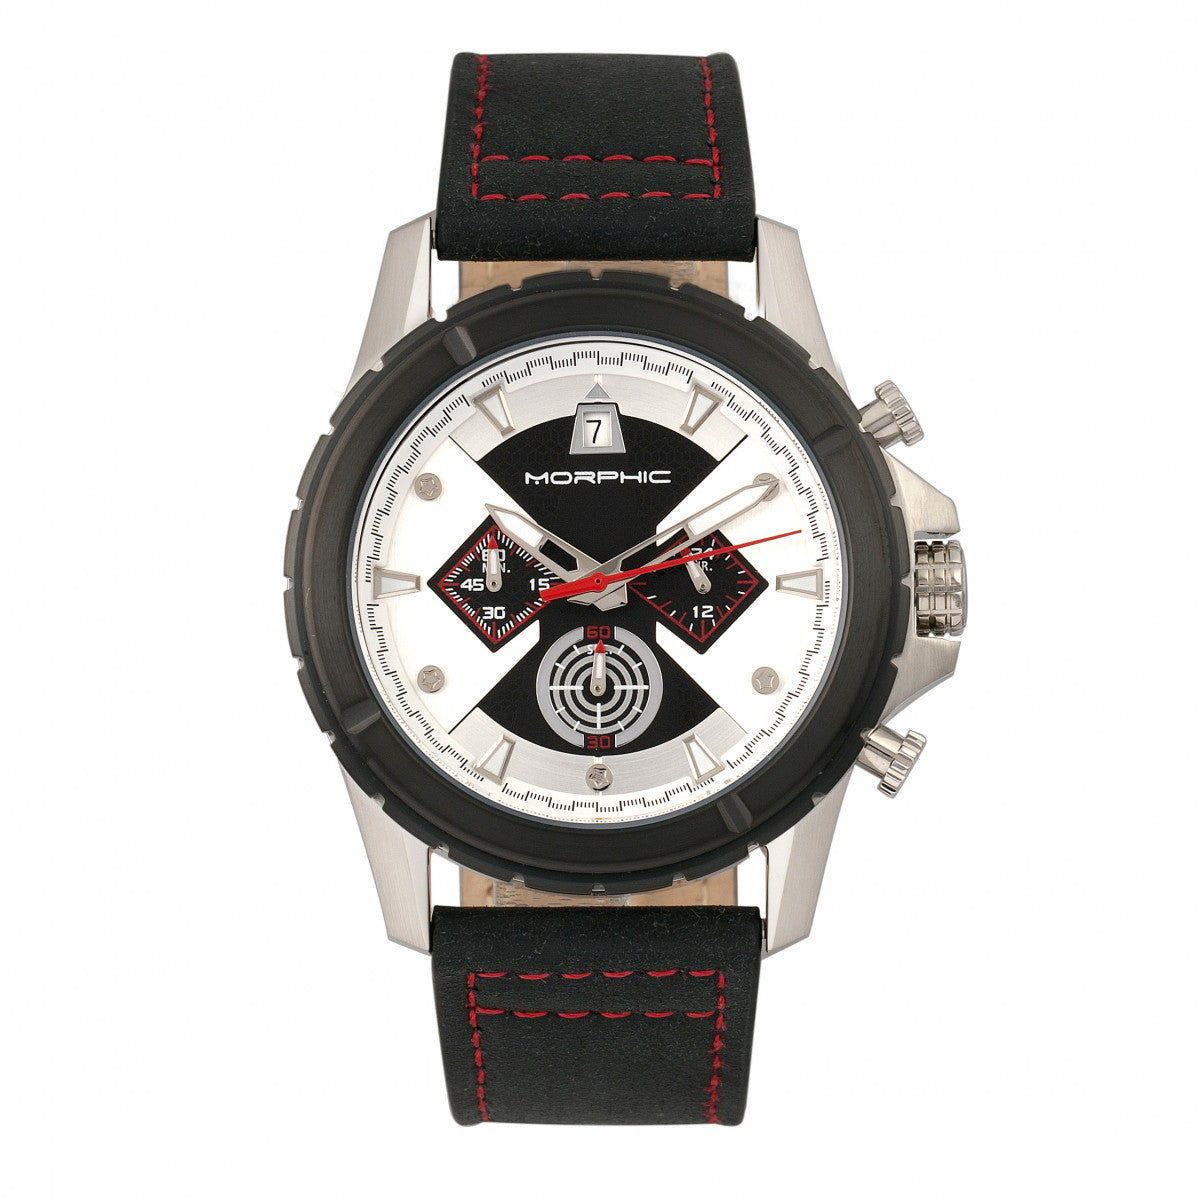 Morphic M57 Series Chronograph Leather-Band Watch - Silver/Black